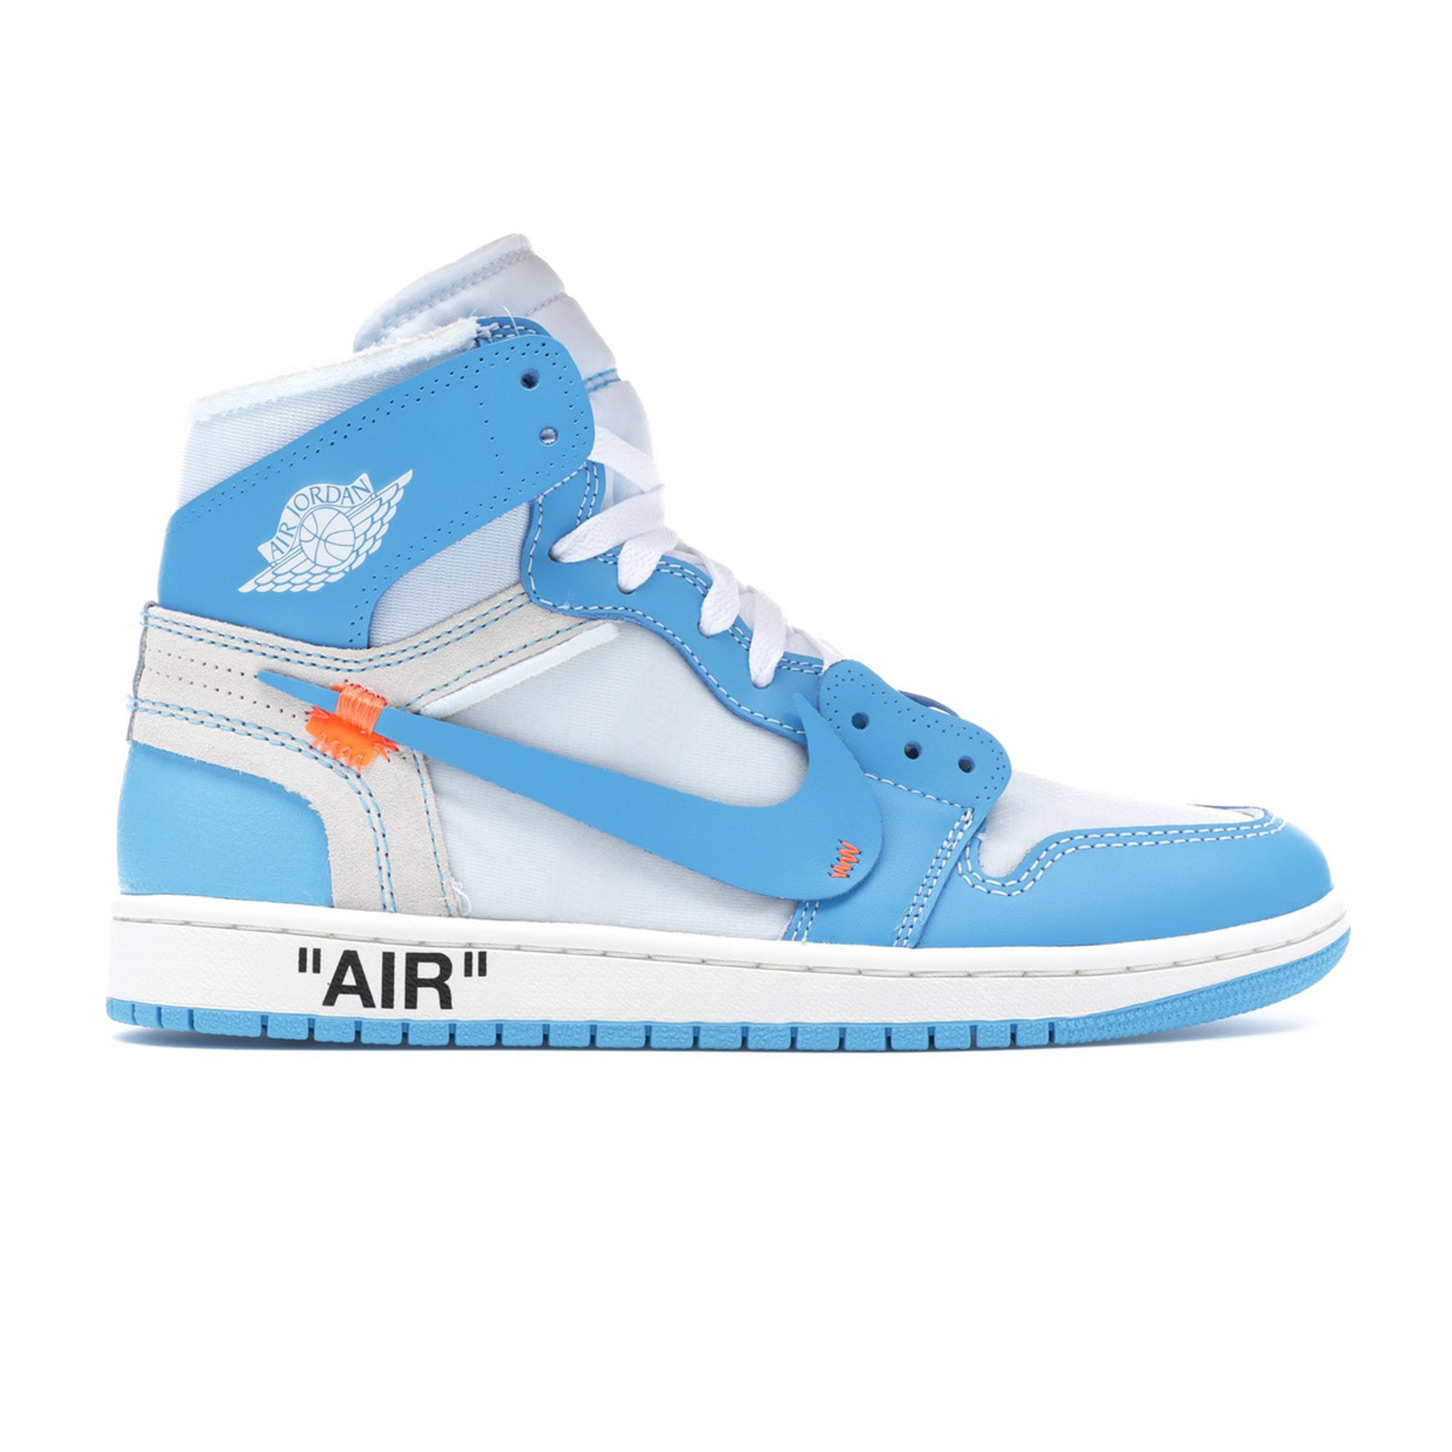 Jordan-1-Retro-High-Off-White-University-Blue